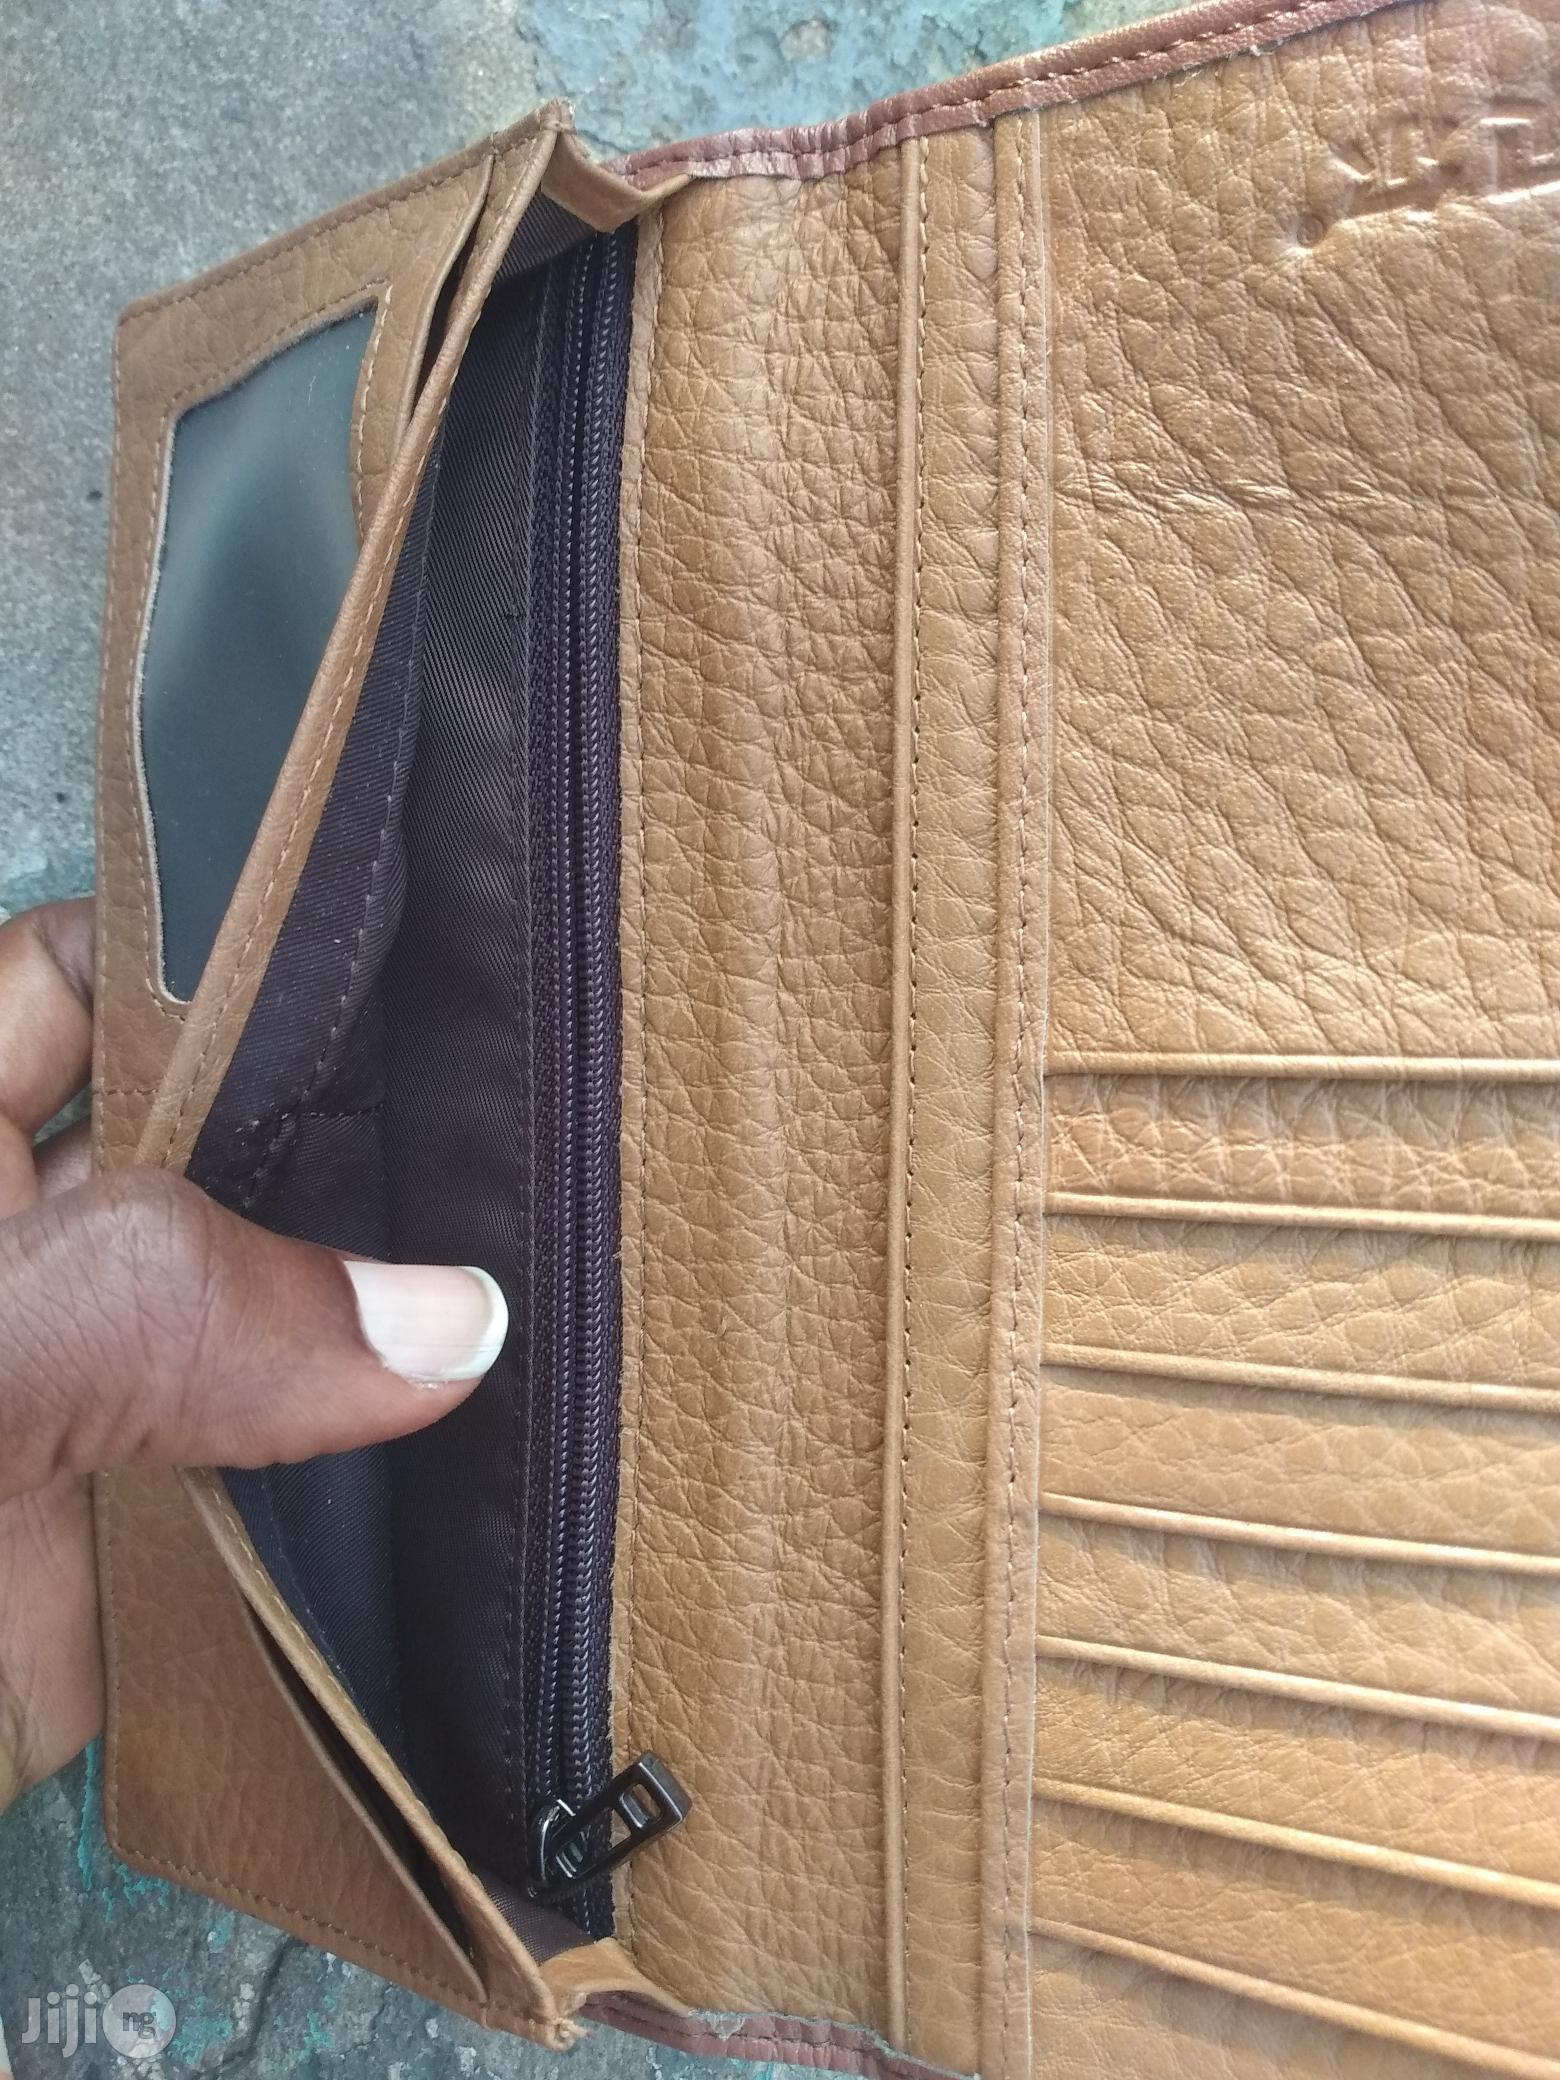 Wallets for Men Purse | Bags for sale in Oshodi, Lagos State, Nigeria